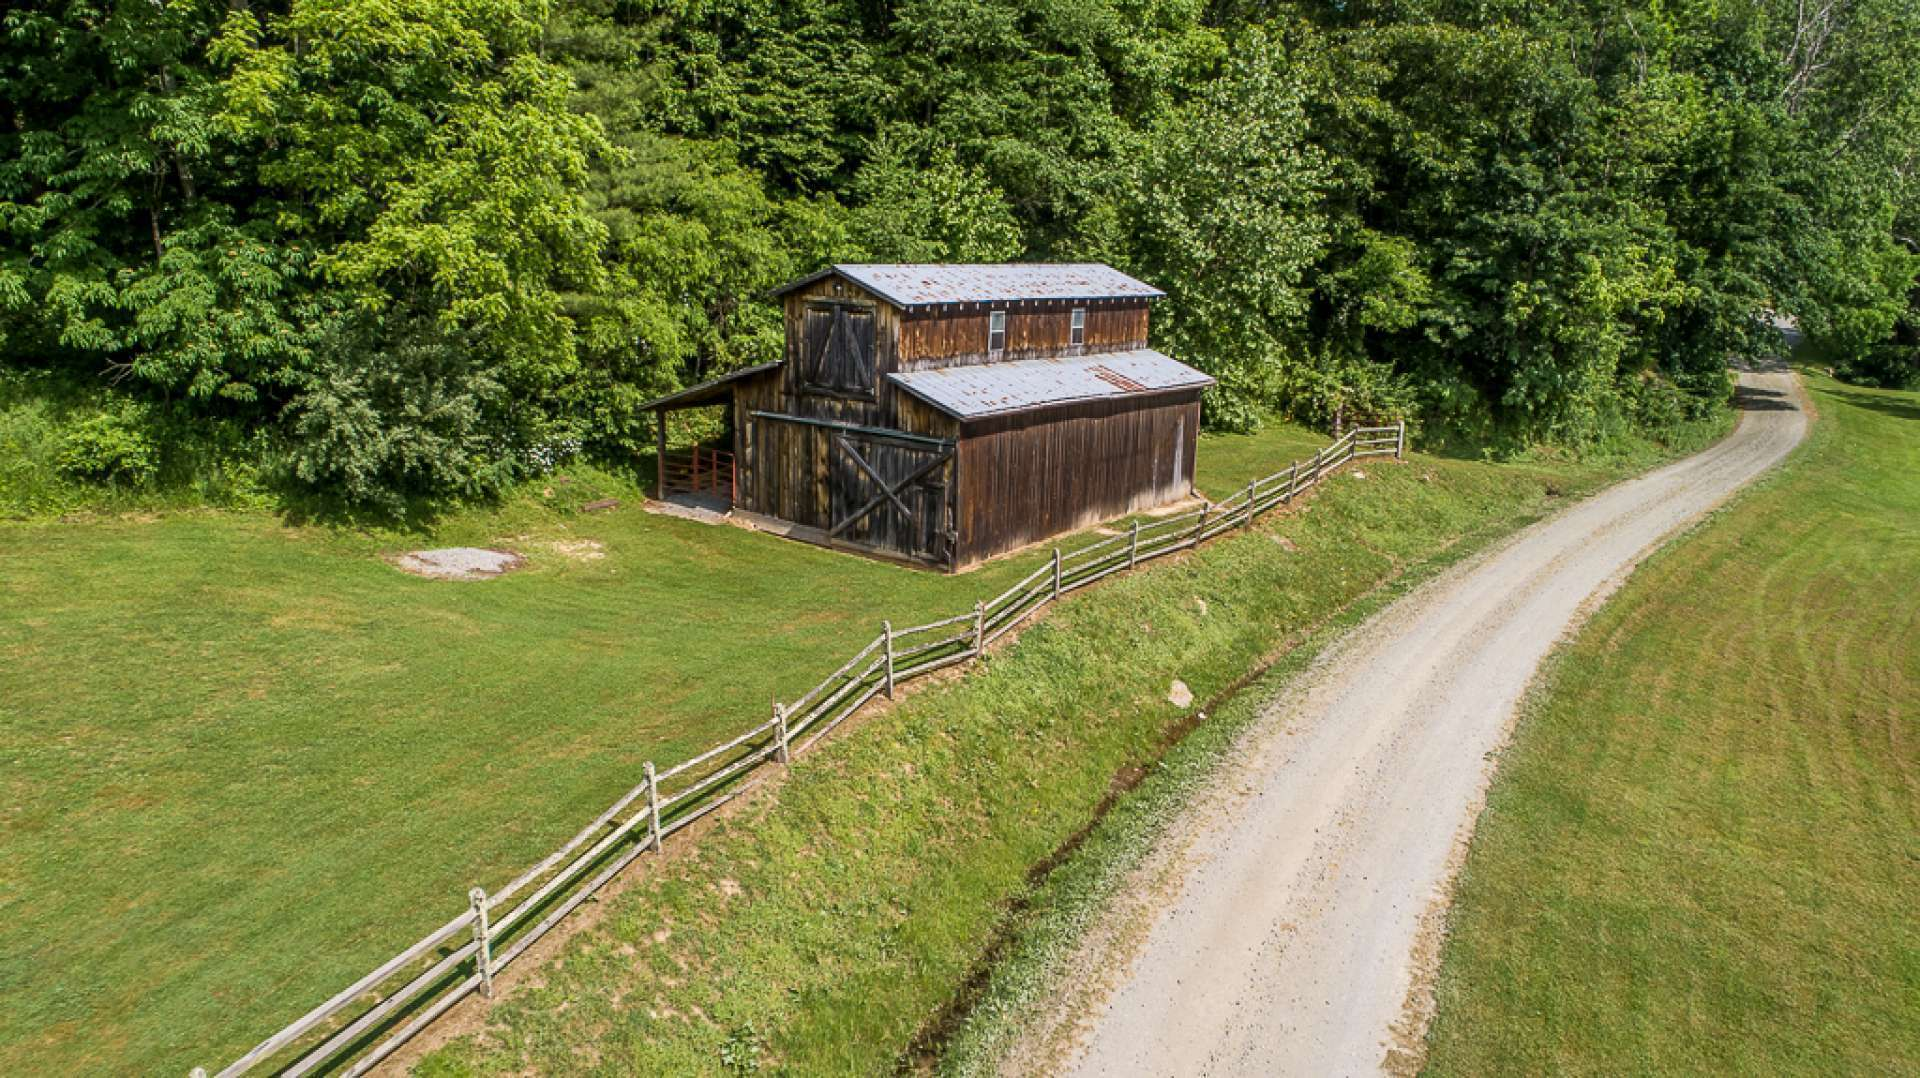 This homestead style hardwood barn features two stalls and plenty of room for equipment or livestock. The wooded areas are great for exploring, too.